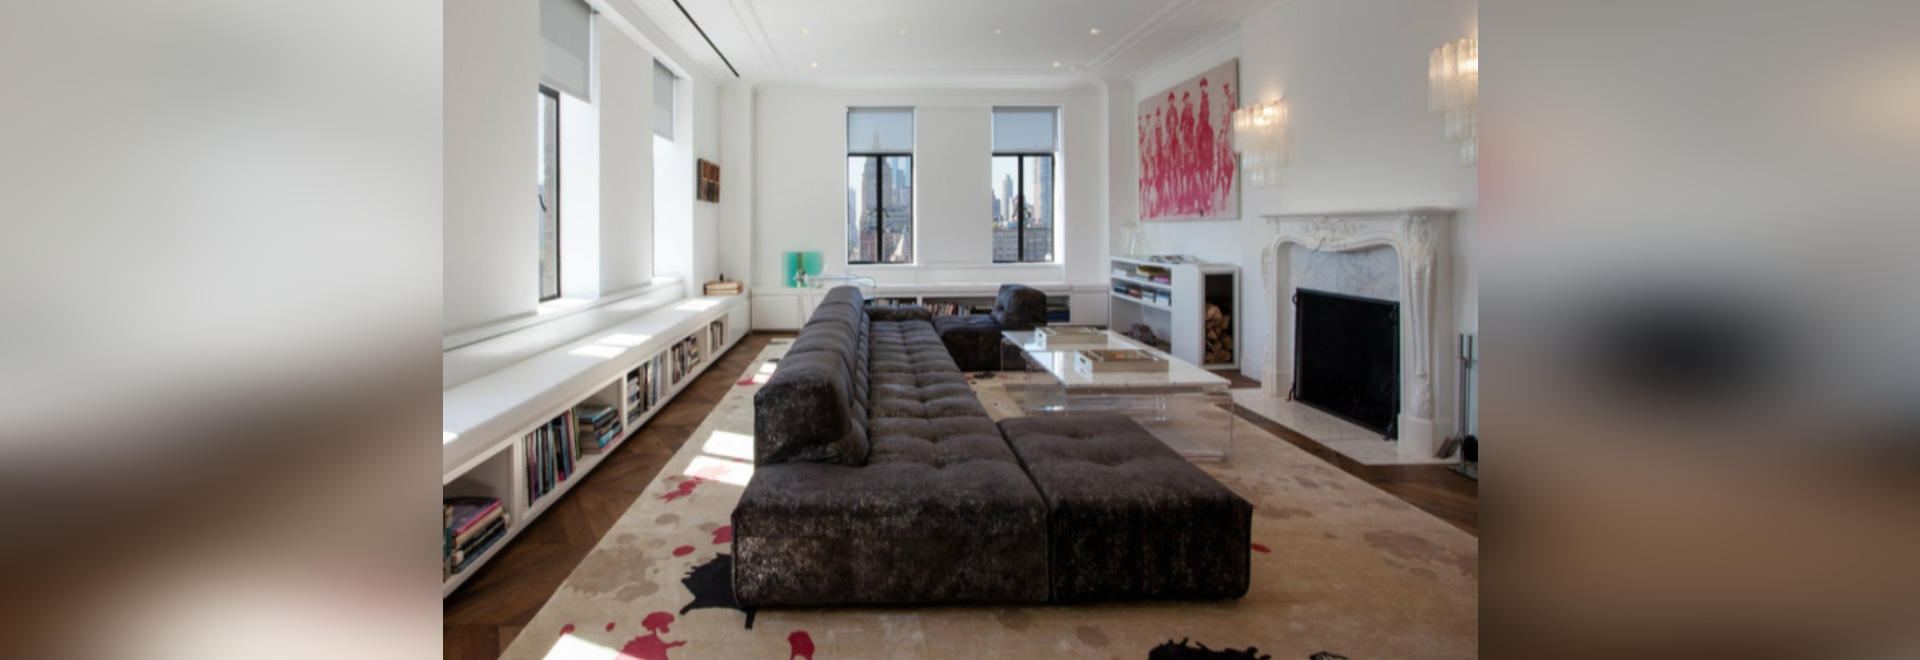 Take A Peek Inside Of This Luxury Home in New York City